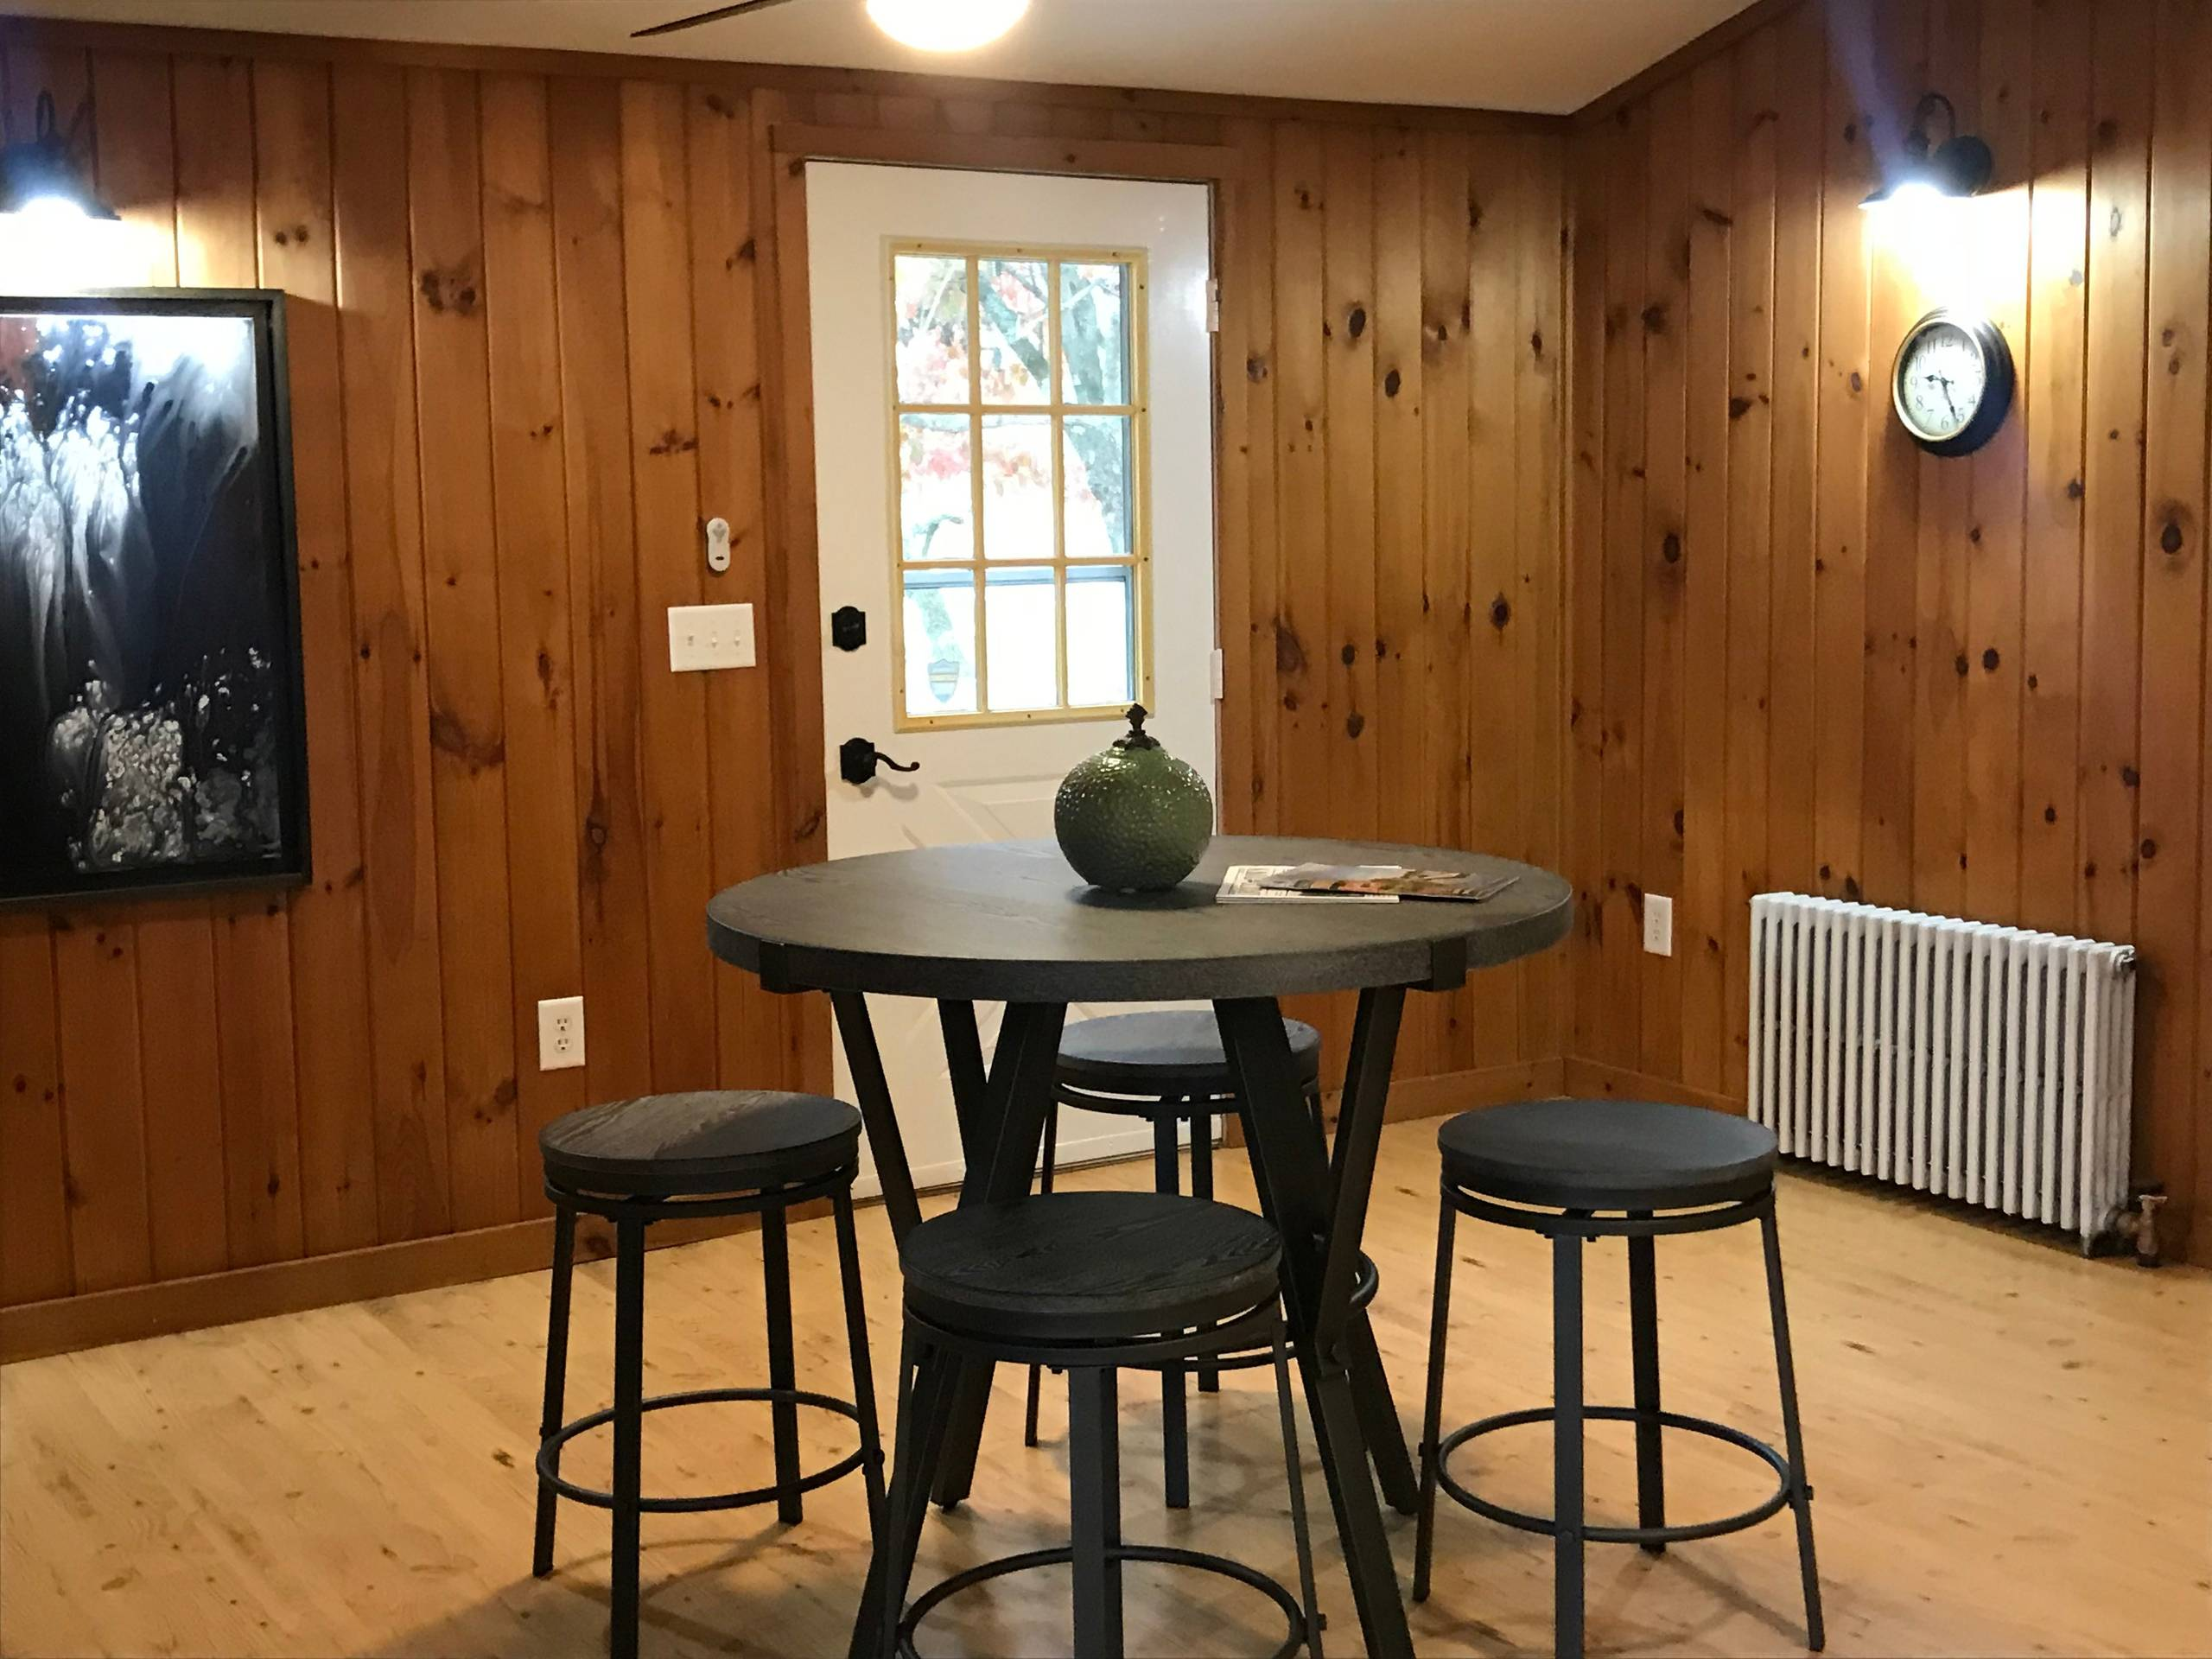 ESOPUS VACANT STAGING